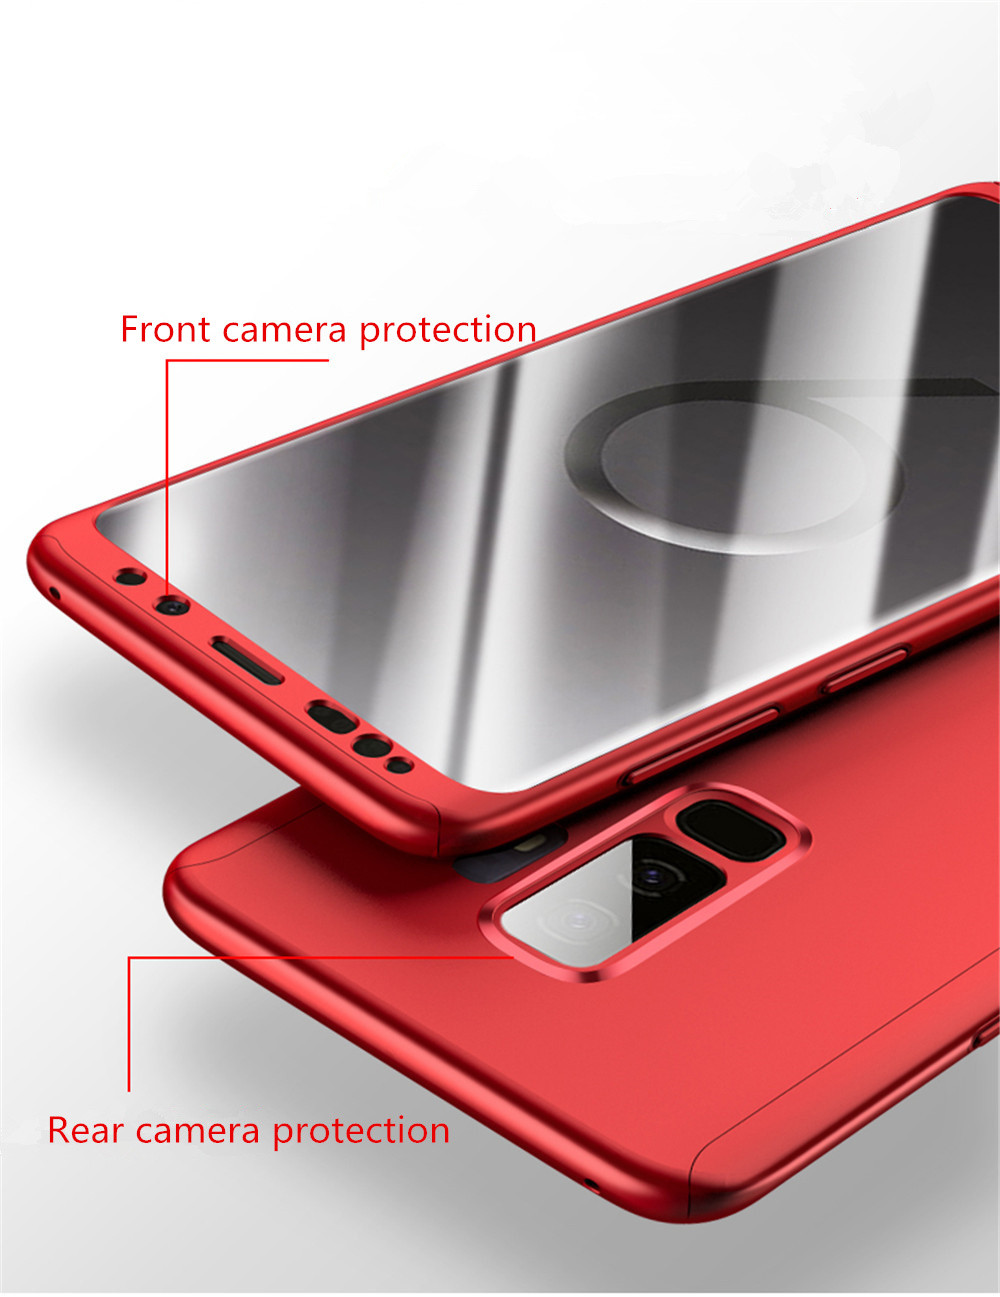 360 Degree Protection Case For Samsung Galaxy Note 3 4 5 Hard Cases For Galaxy A3 A5 A7 2017 A8 A8+ A6 A710 With Tempered Glass